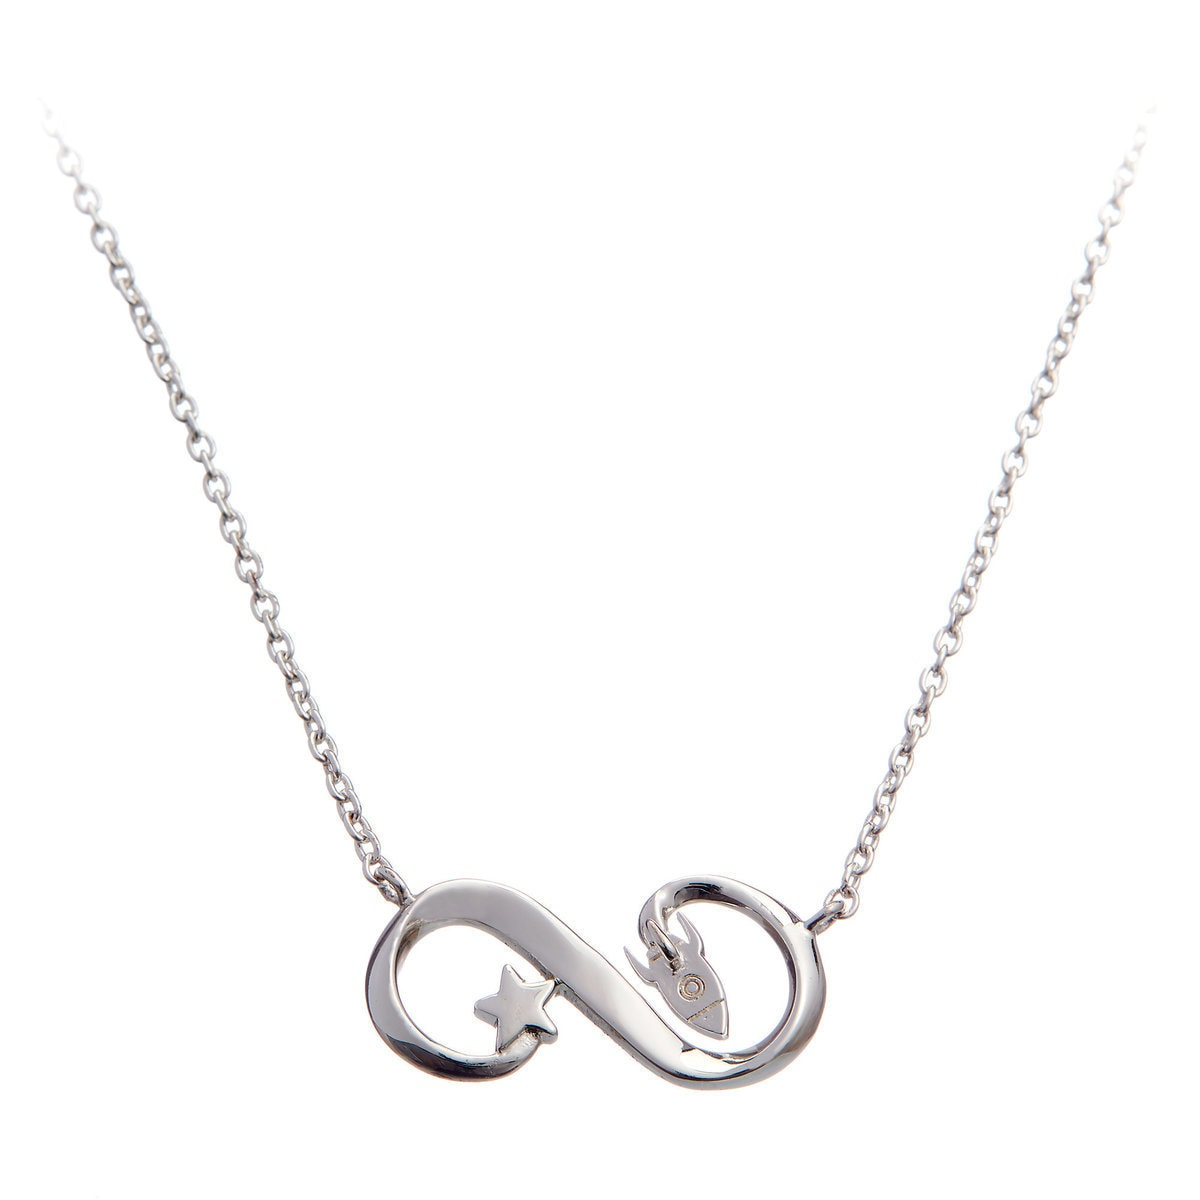 necklace mini infinity co ed jewelry sign silver infinitypendant sterling tiffany in necklaces pendants pendant